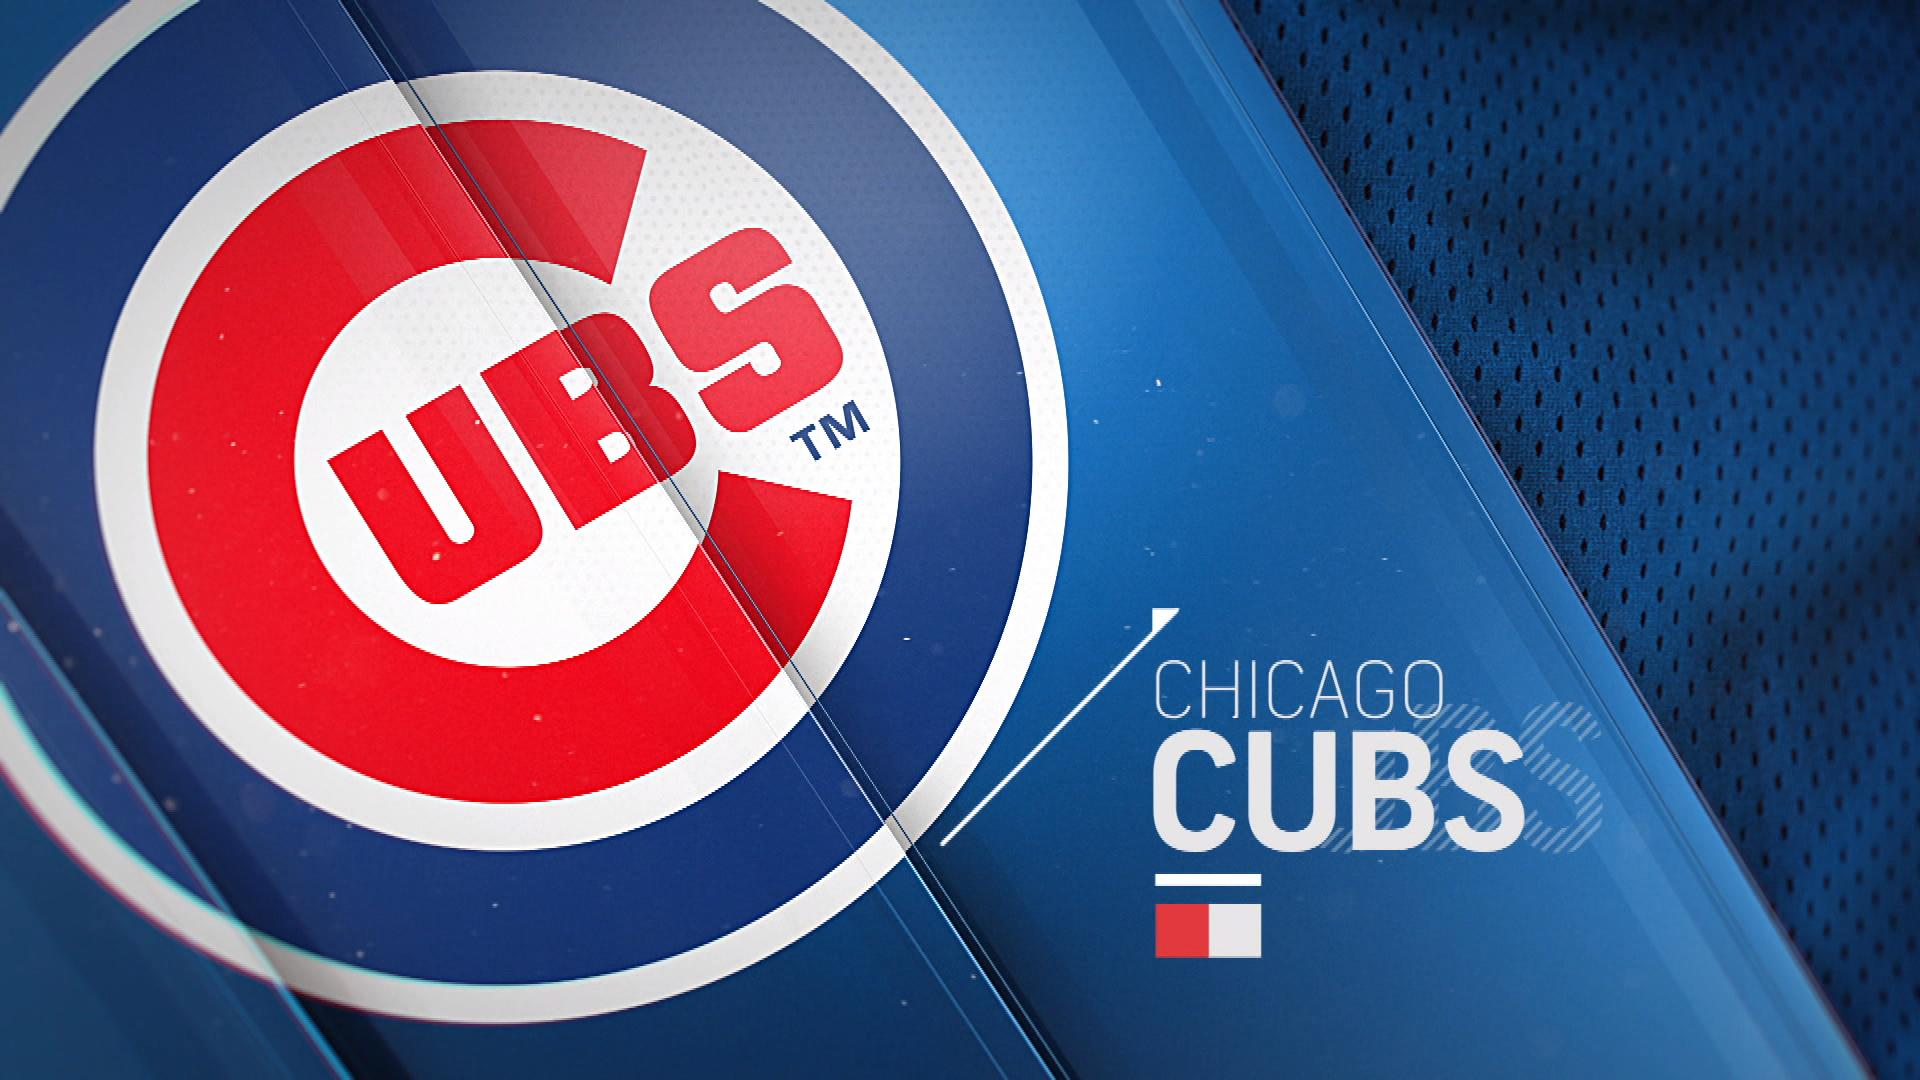 Nice wallpapers Chicago Cubs 1920x1080px